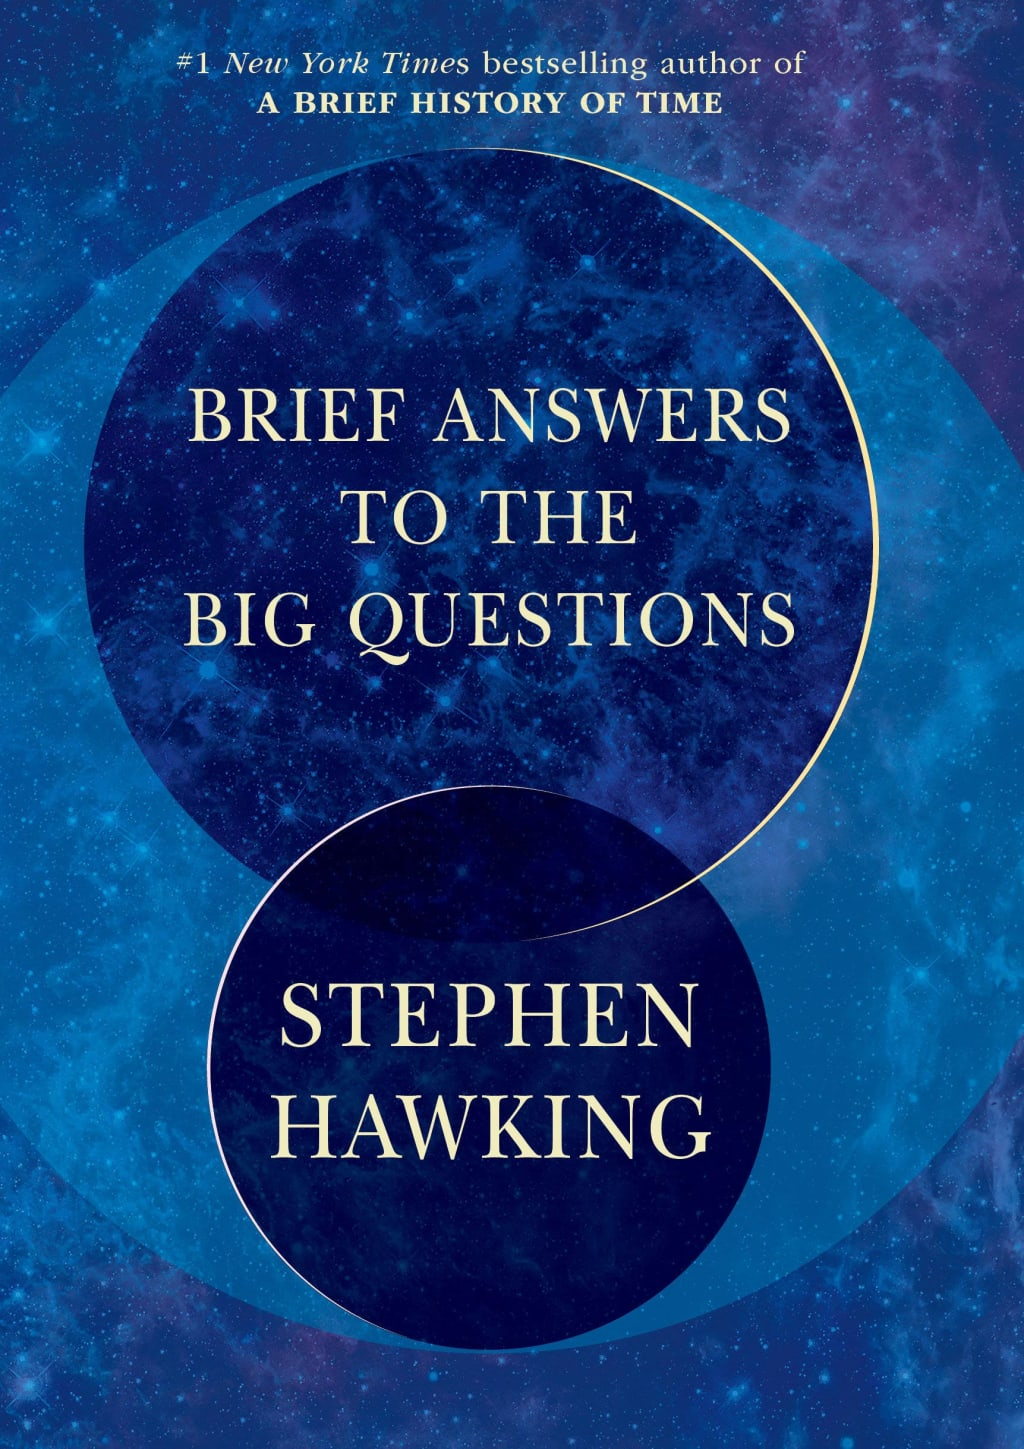 Thoughts on the Book 'Brief Answers to the Big Questions' (Ch. 2)